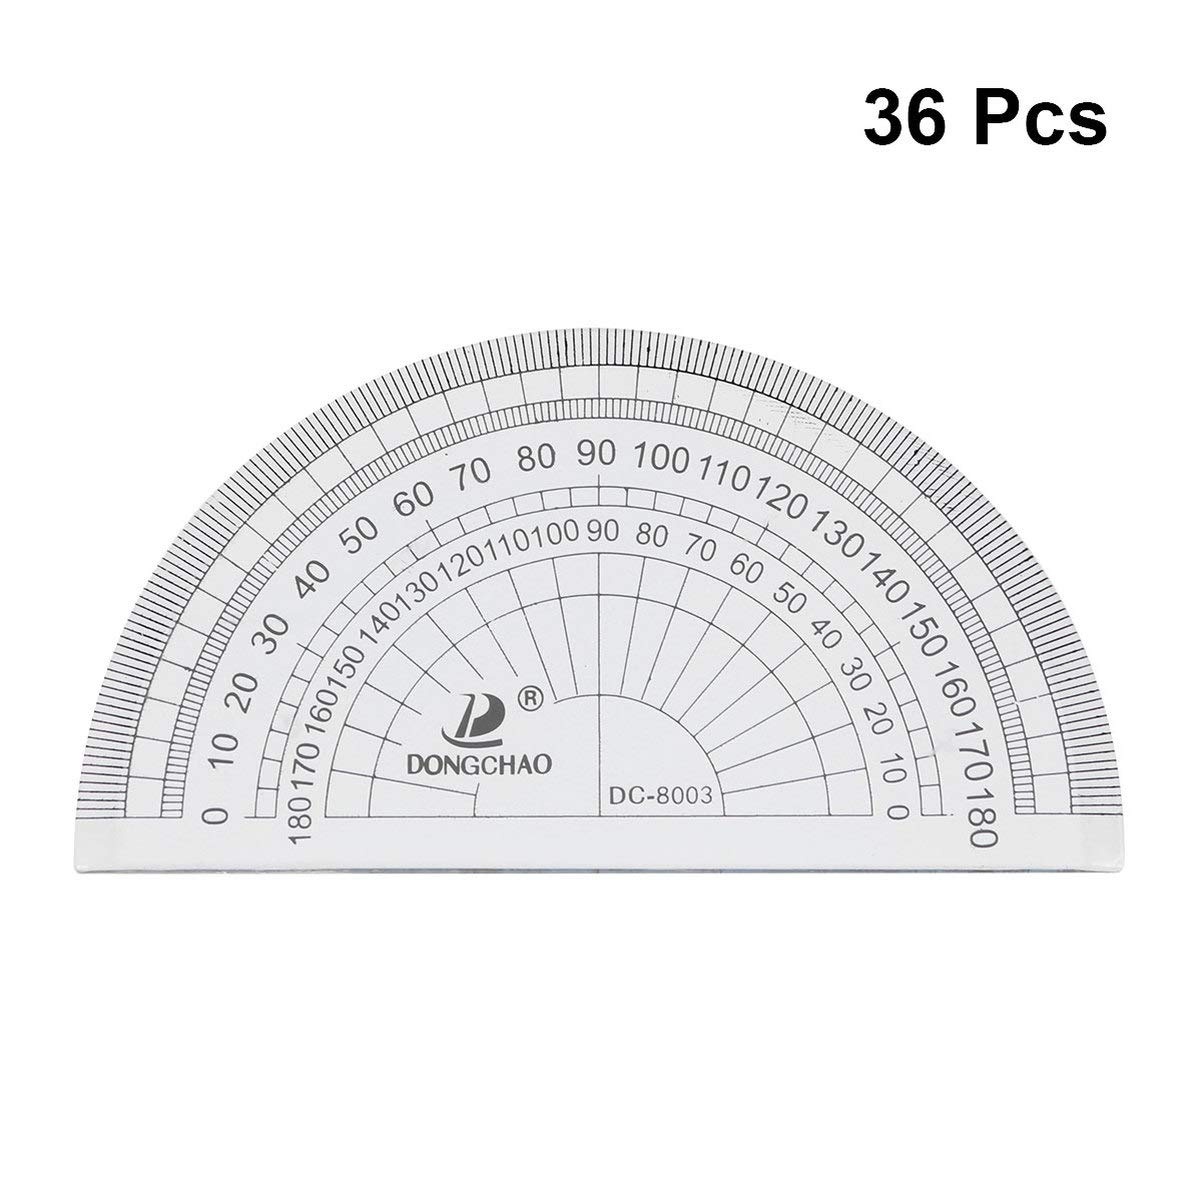 Toyvian Protractor 180 Degrees Plastic Geometrical Protractors Math Tool for Student School Angle Measurement by Toyvian